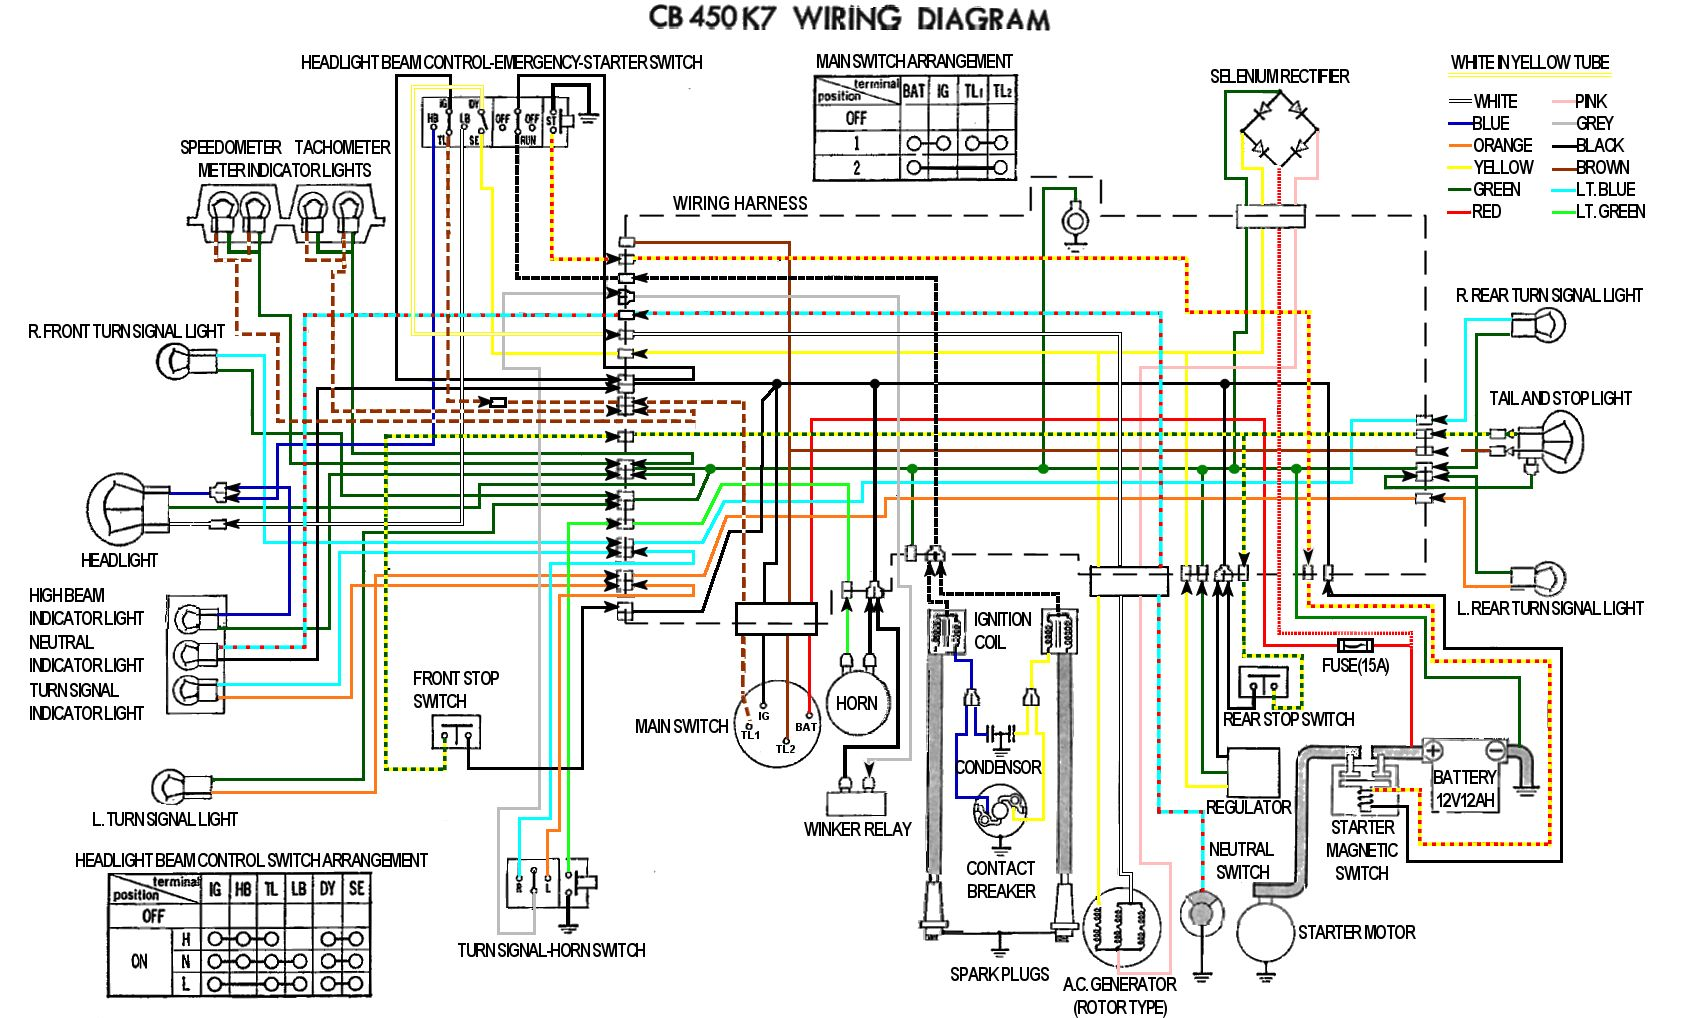 CB450    Color       wiring       diagram     now corrected